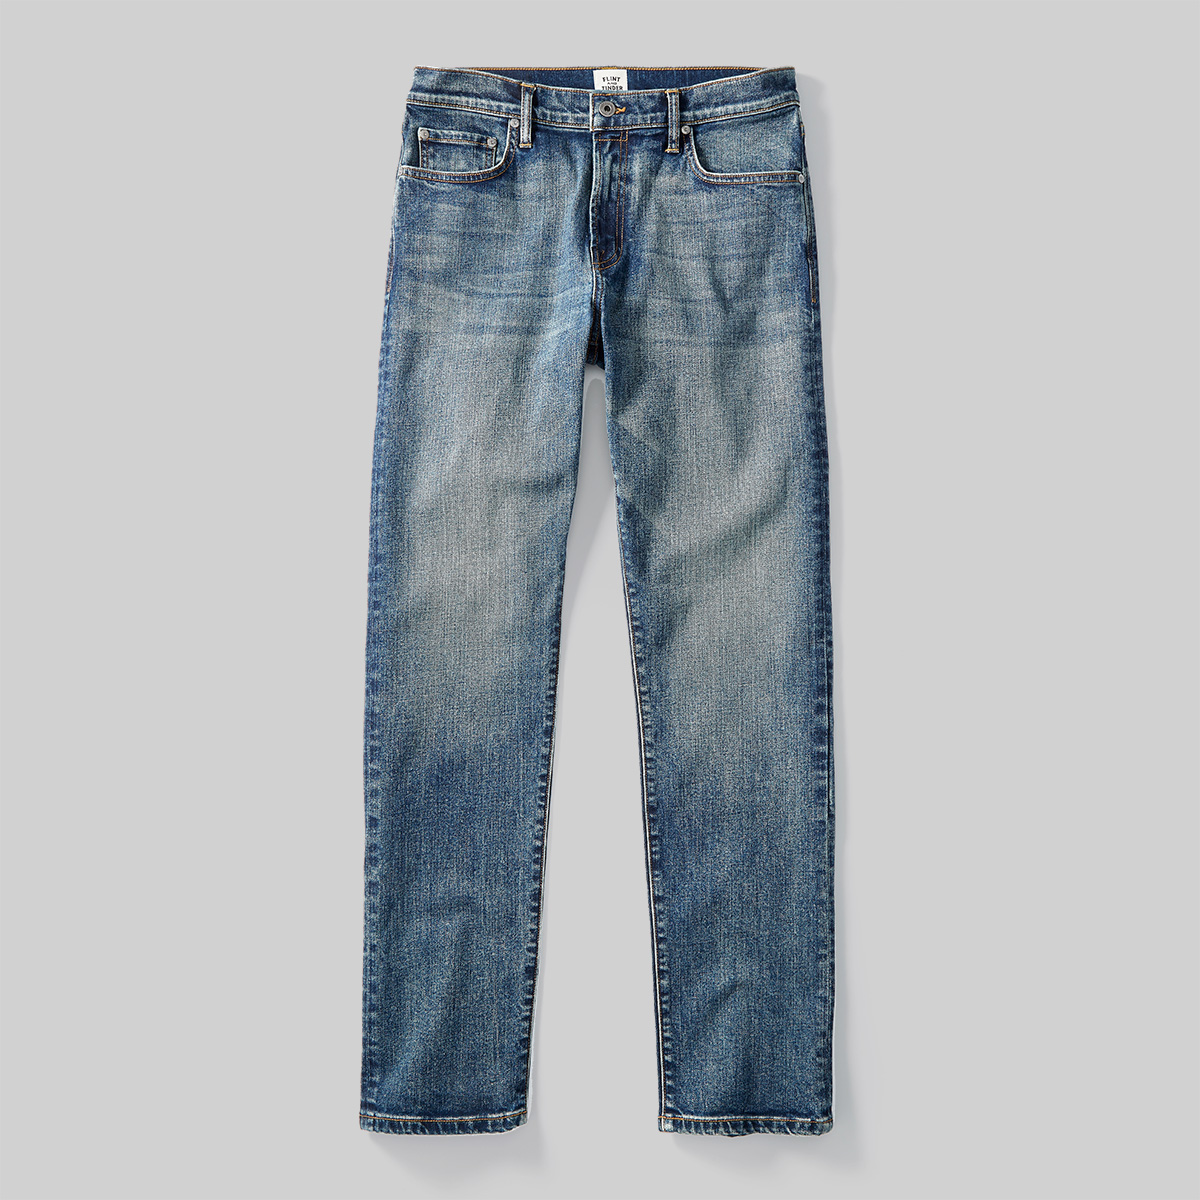 Flint and Tinder Stonewash Jeans